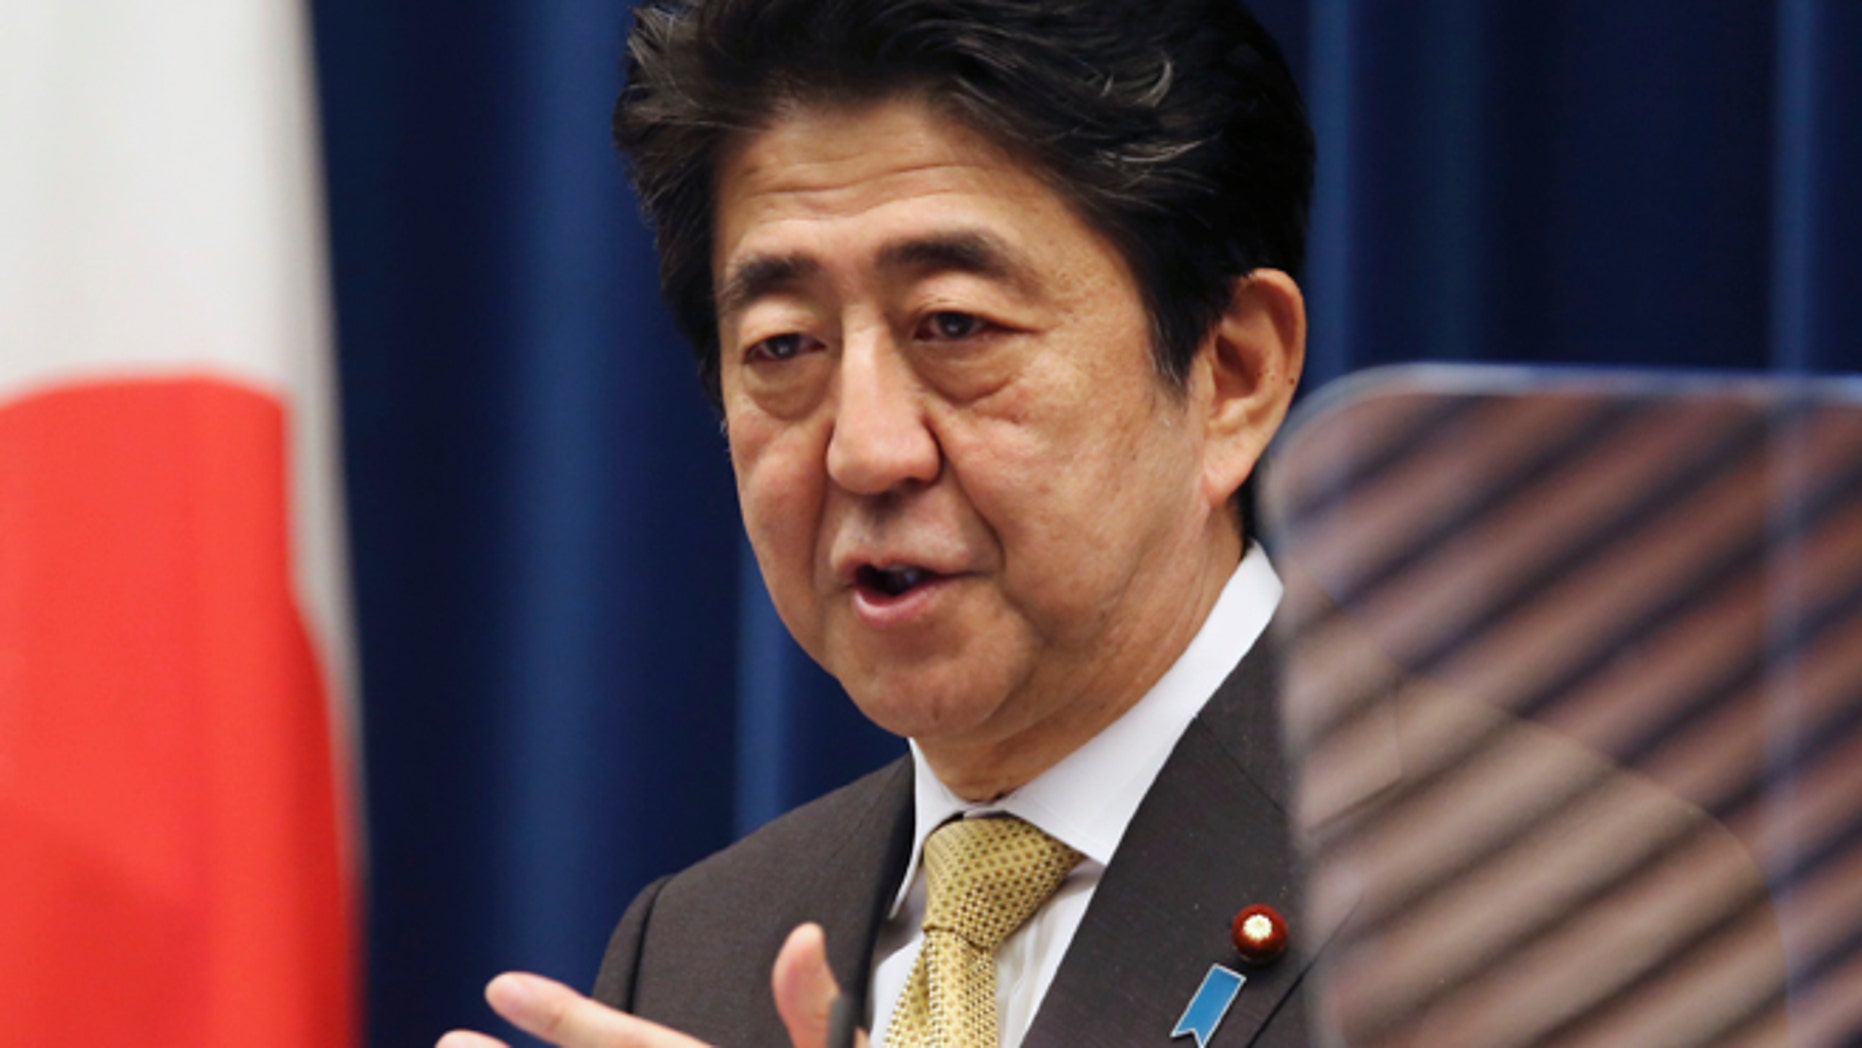 Sept. 25: Japanese Prime Minister Shinzo Abe speaks during a press conference at the Prime Minister's Office in Tokyo.